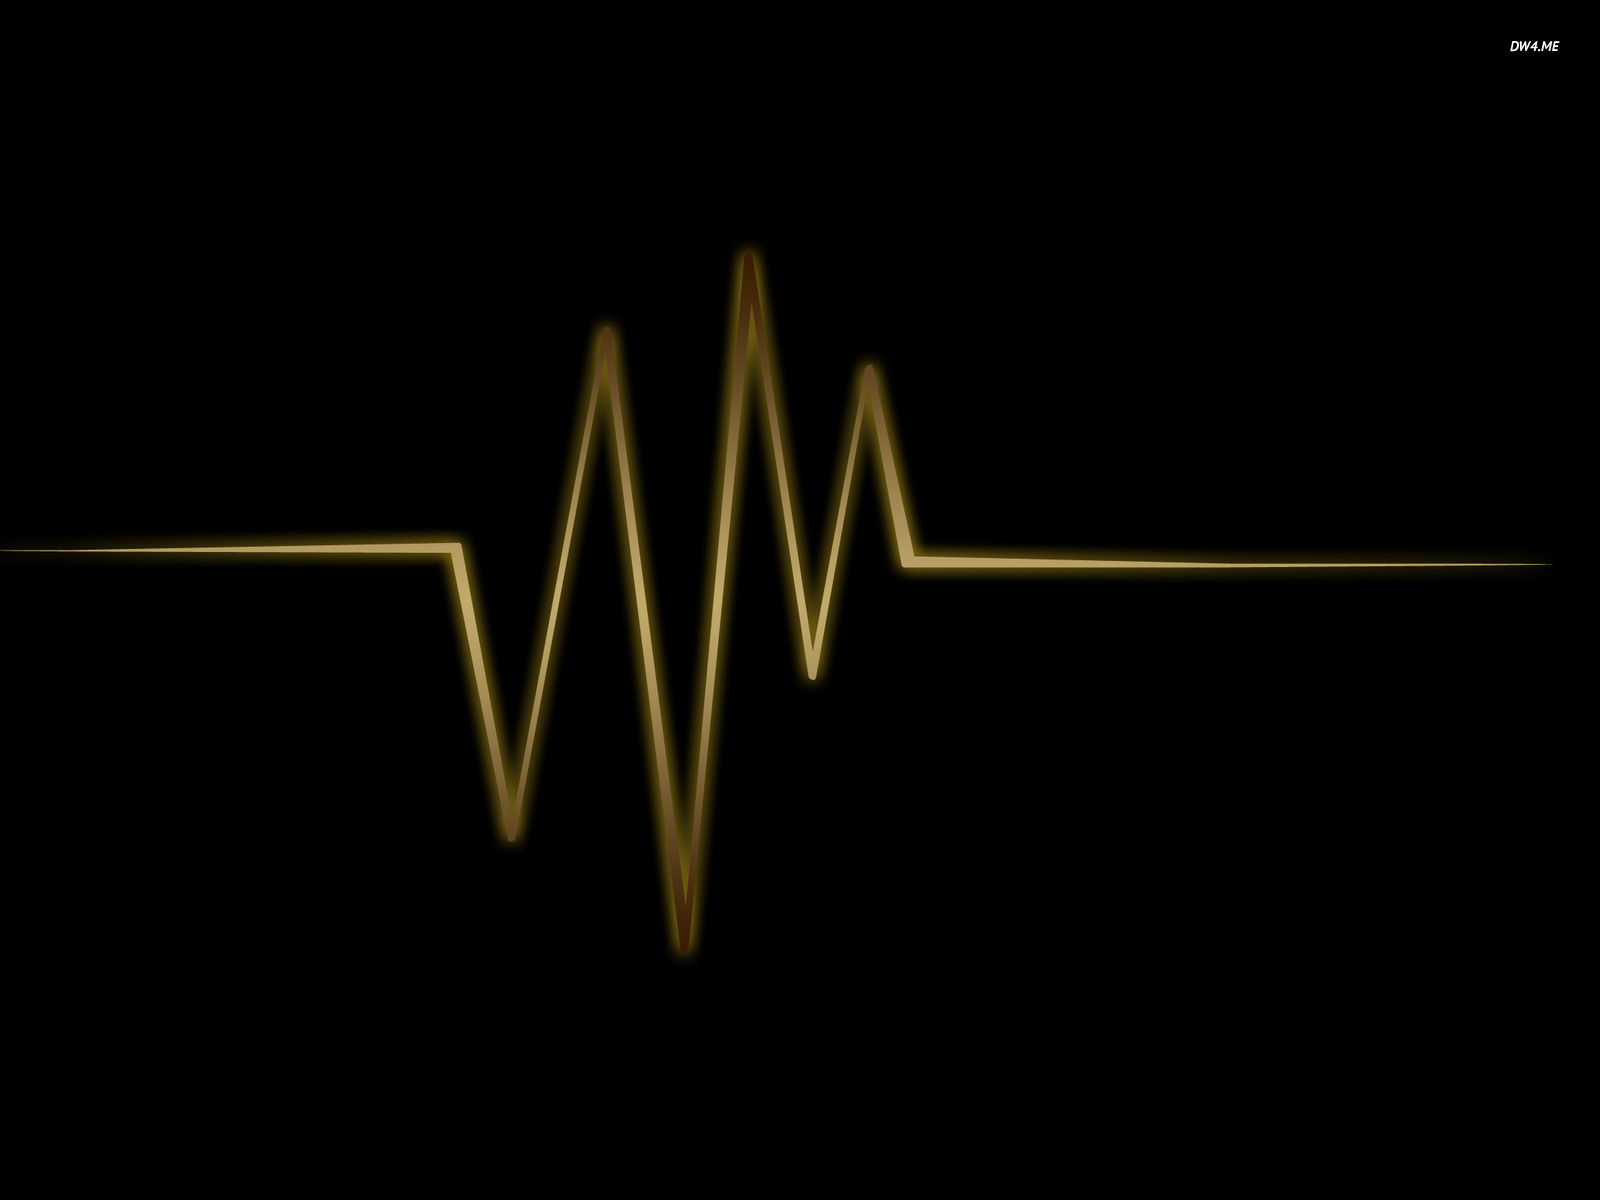 Heartbeat wallpaperAbstract wallpapers#506 1768